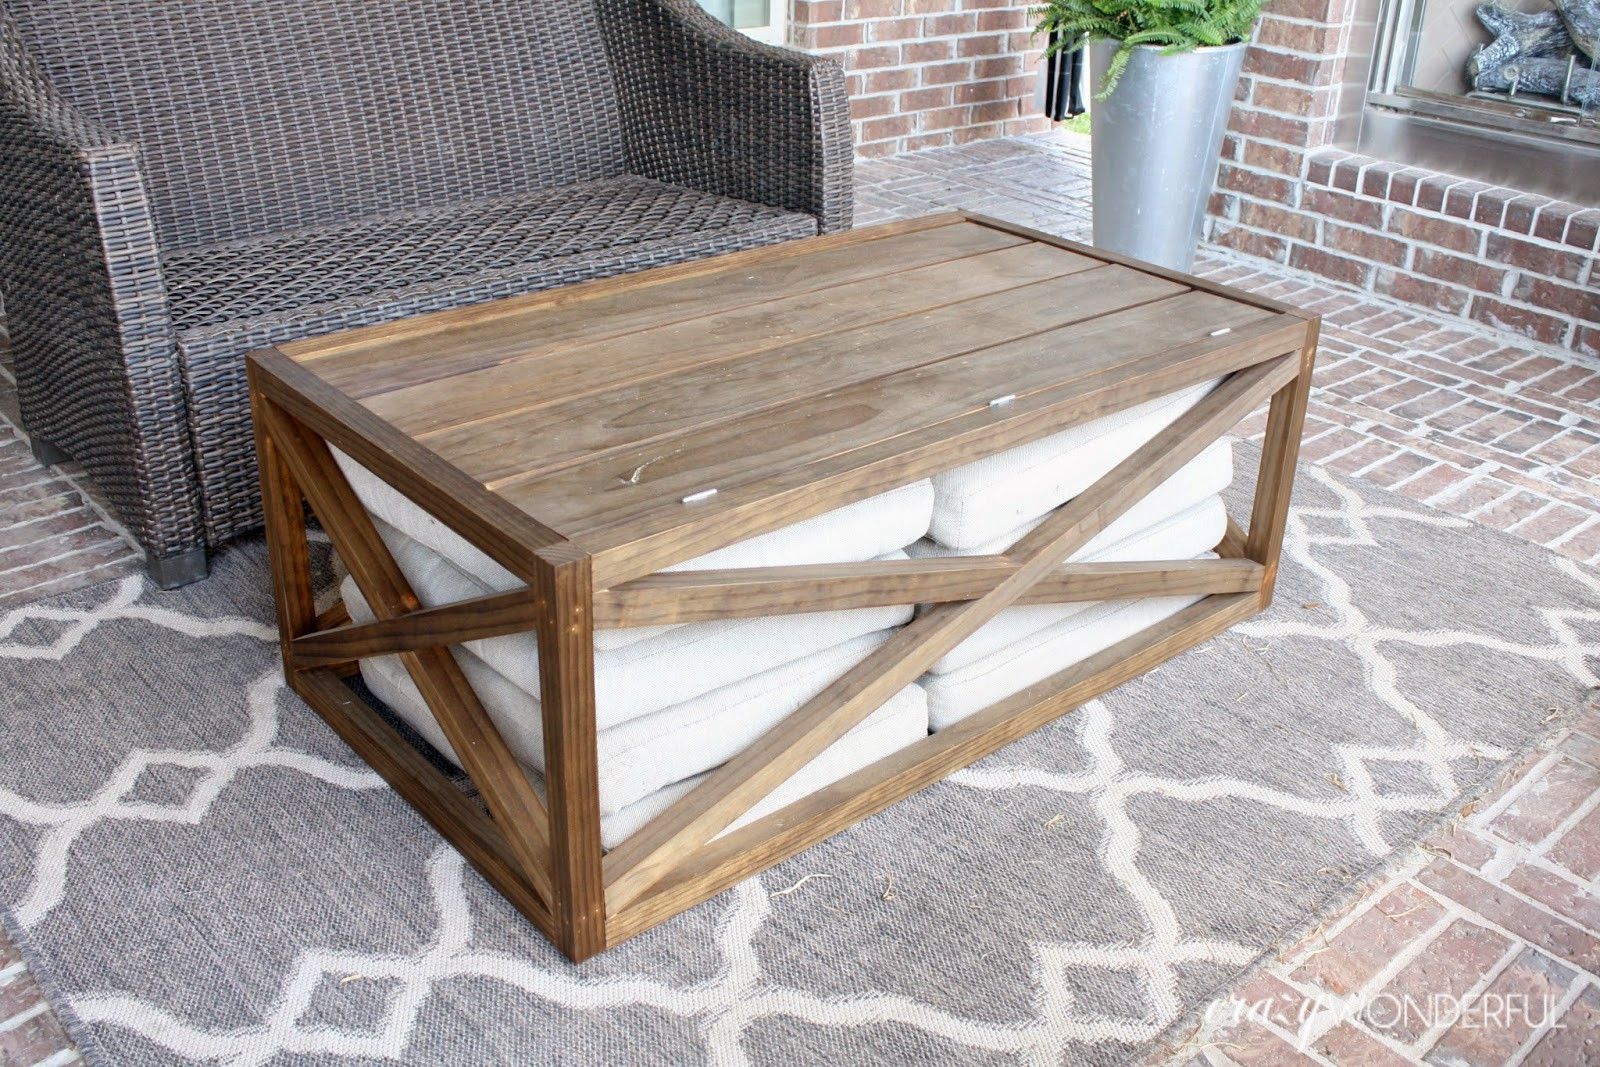 Cool Coffee Tables With Storage Download Small Kitchen Table With Storage Inspirational Concr In 2020 Homemade Coffee Tables Coffee Table Cool Coffee Tables [ 1067 x 1600 Pixel ]